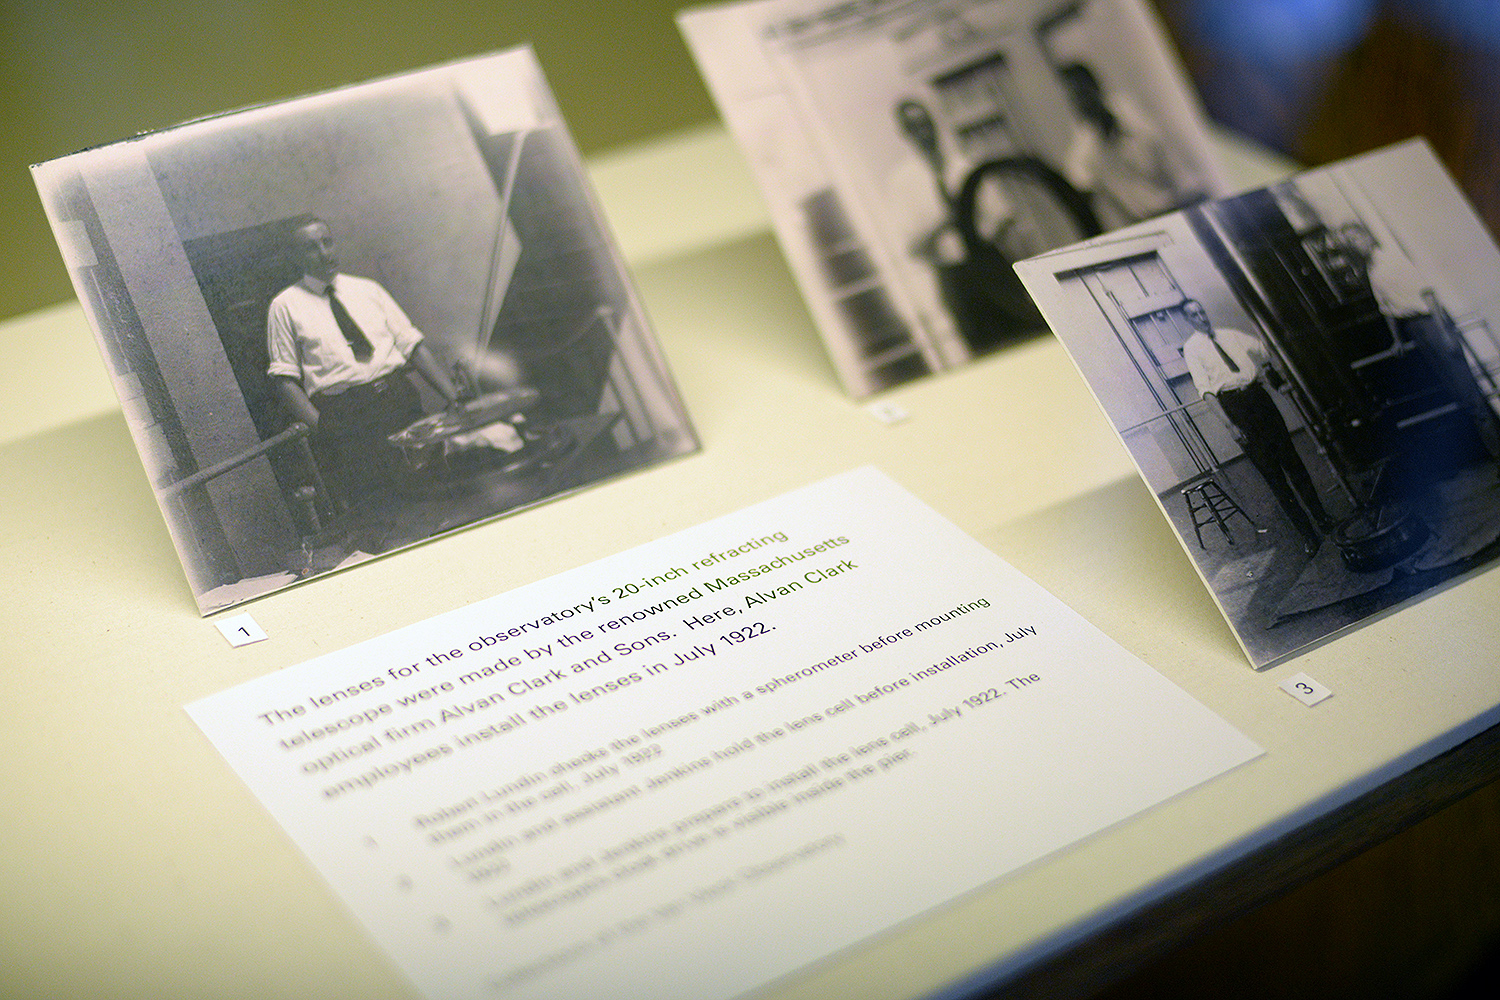 Photographs on display in the exhibit included shots of employees of the renowned optical firm Alvan Clark and Sons installing lenses on the observatory's 20-inch refracting telescope in July 1922.